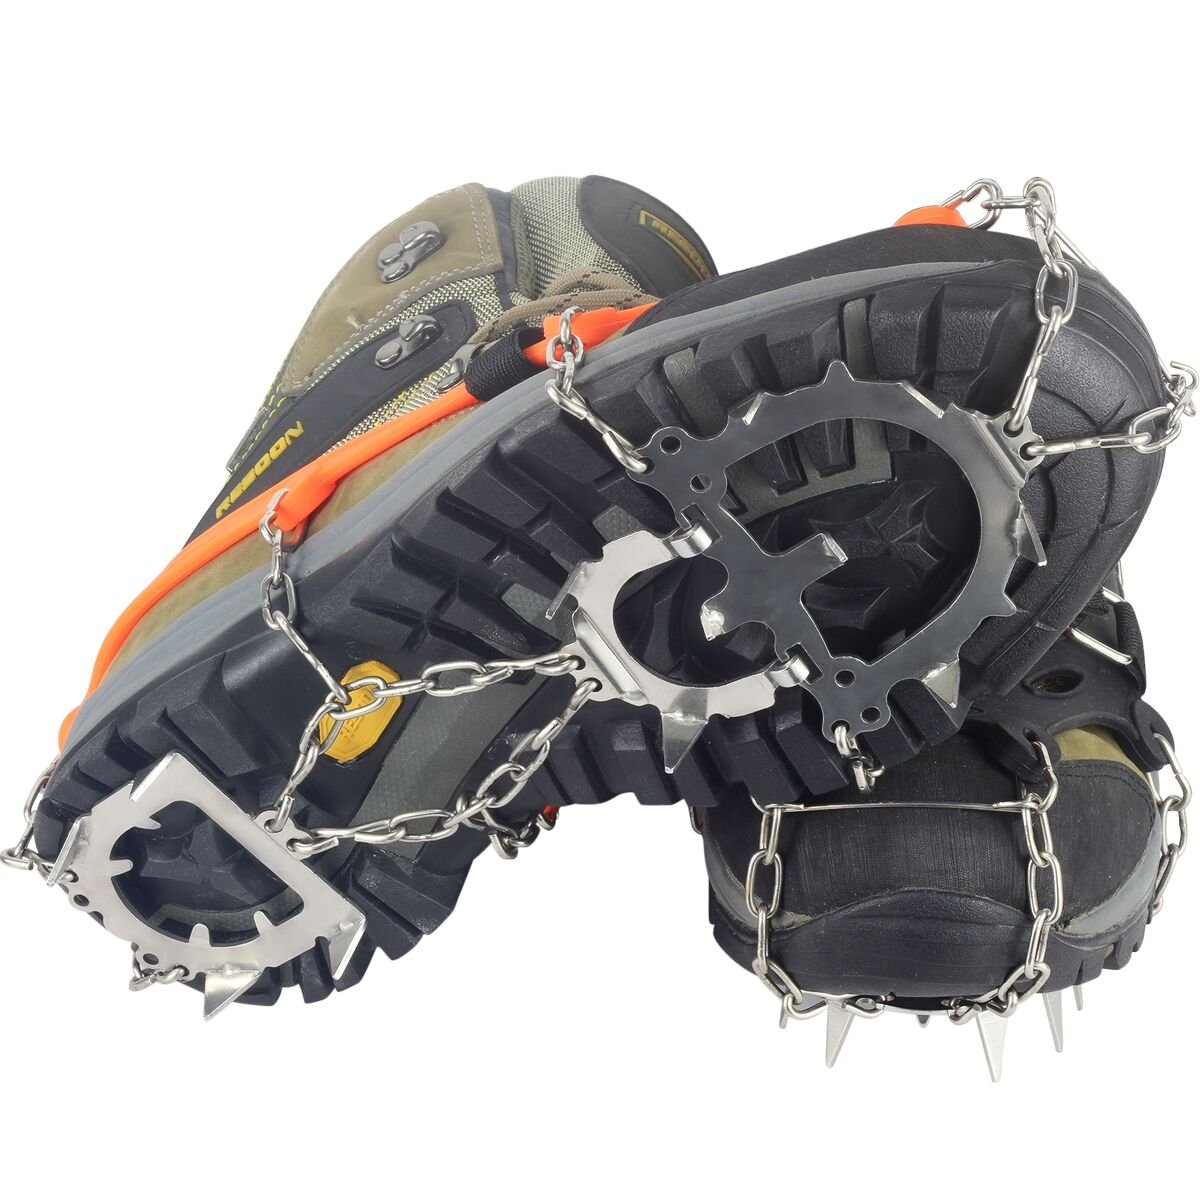 YUEDGE Universal 12 Teeth Stainless Steel Anti Slip Ice Cleats Shoe Boot Grips Crampon Snow Spikes Grips Traction Cleats For Winter Walking Hiking(Orange,L)